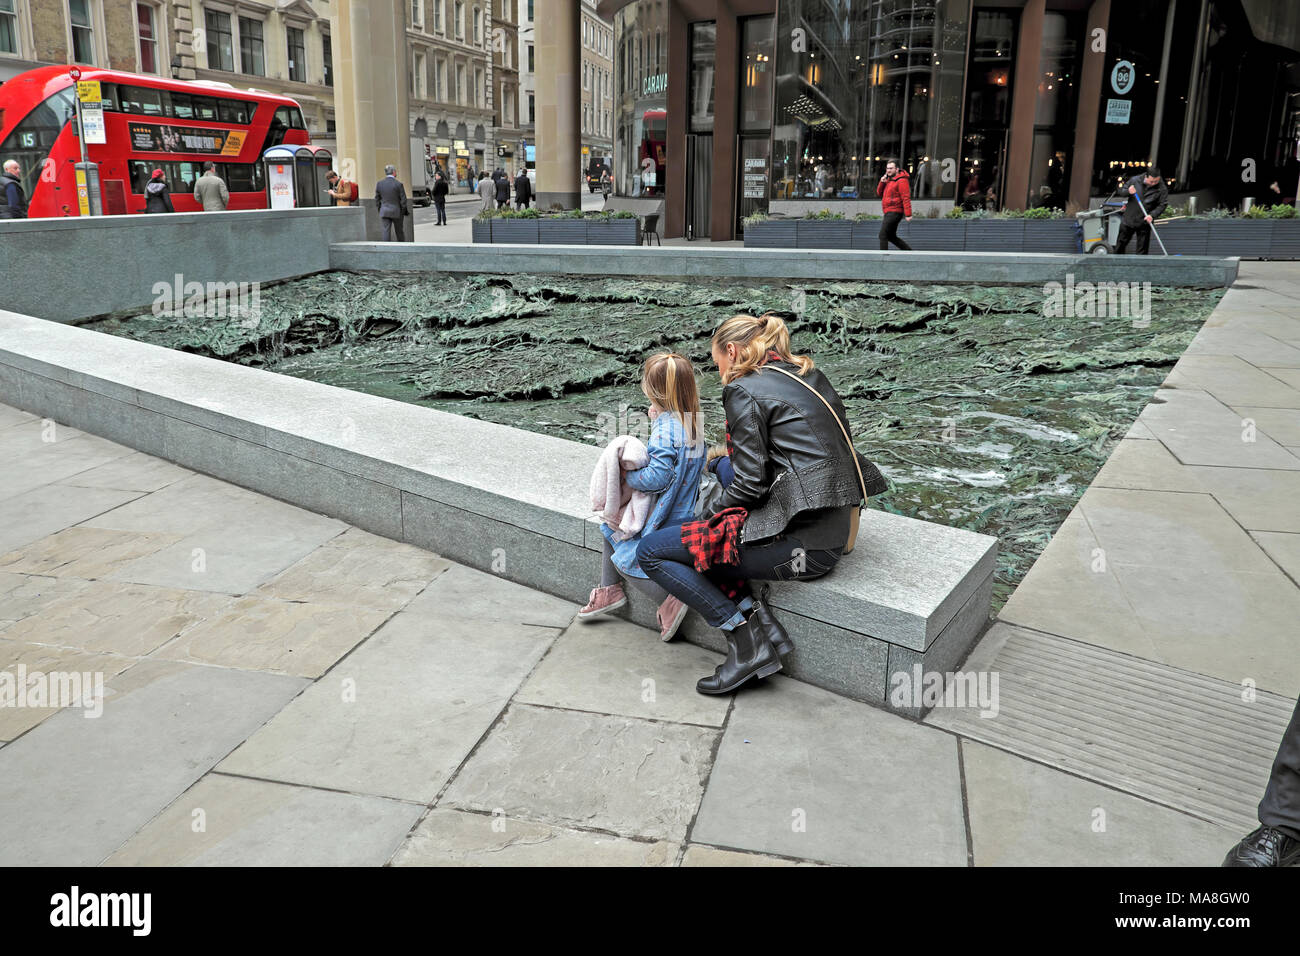 'Forgotten Streams' sculpture by artist Cristina Iglesias at the Bloomberg European Headquarters building in the City of London UK   KATHY DEWITT - Stock Image